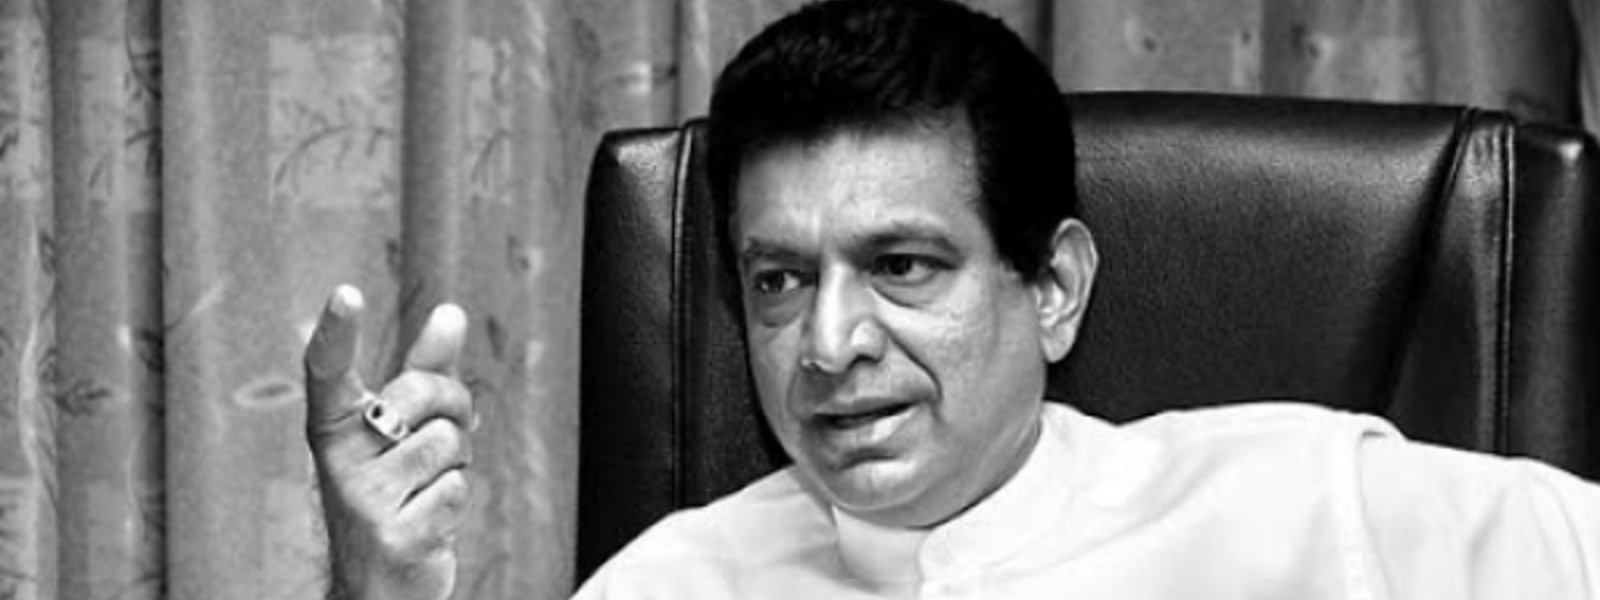 MP Ashok Abeysinghe noticed to appear at CID for comments on 2019 Attacks